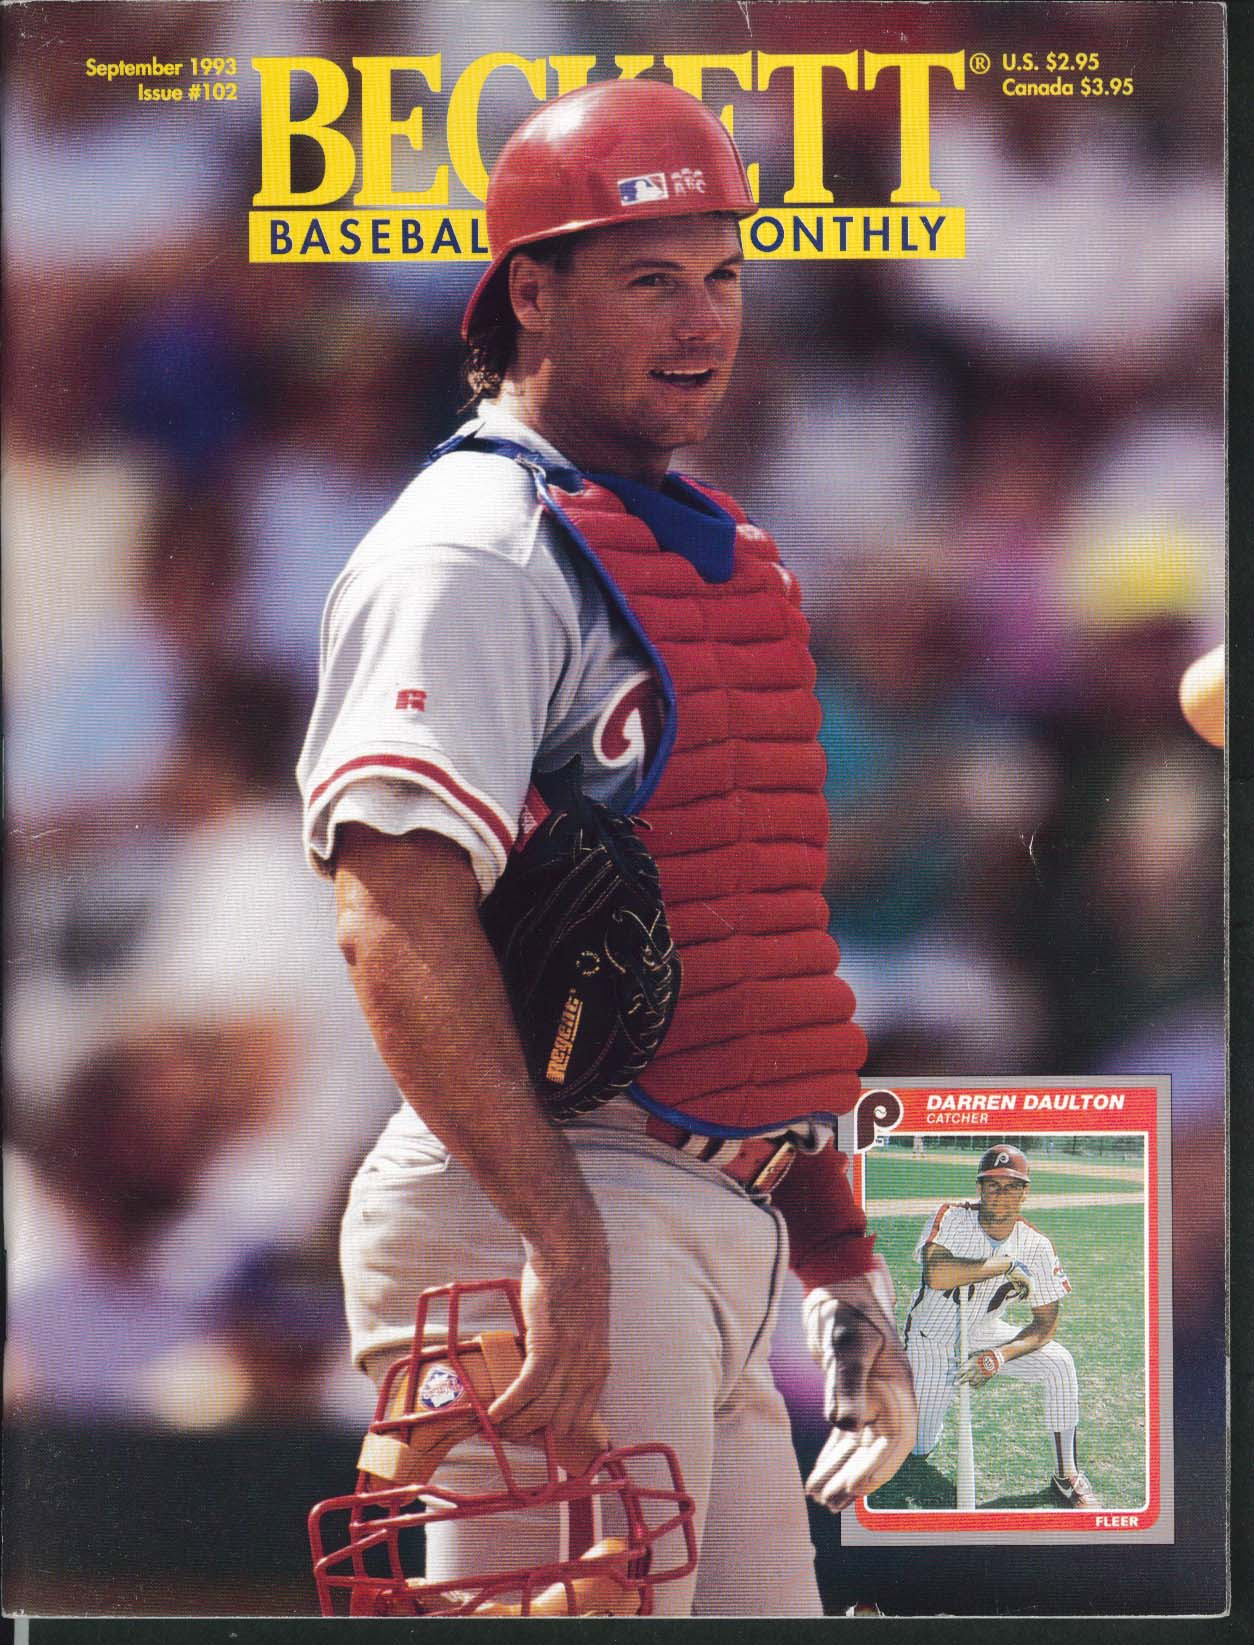 BECKETT BASEBALL CARD MONTHLY Darren Daulton Albert Belle John Kruk 8 1993